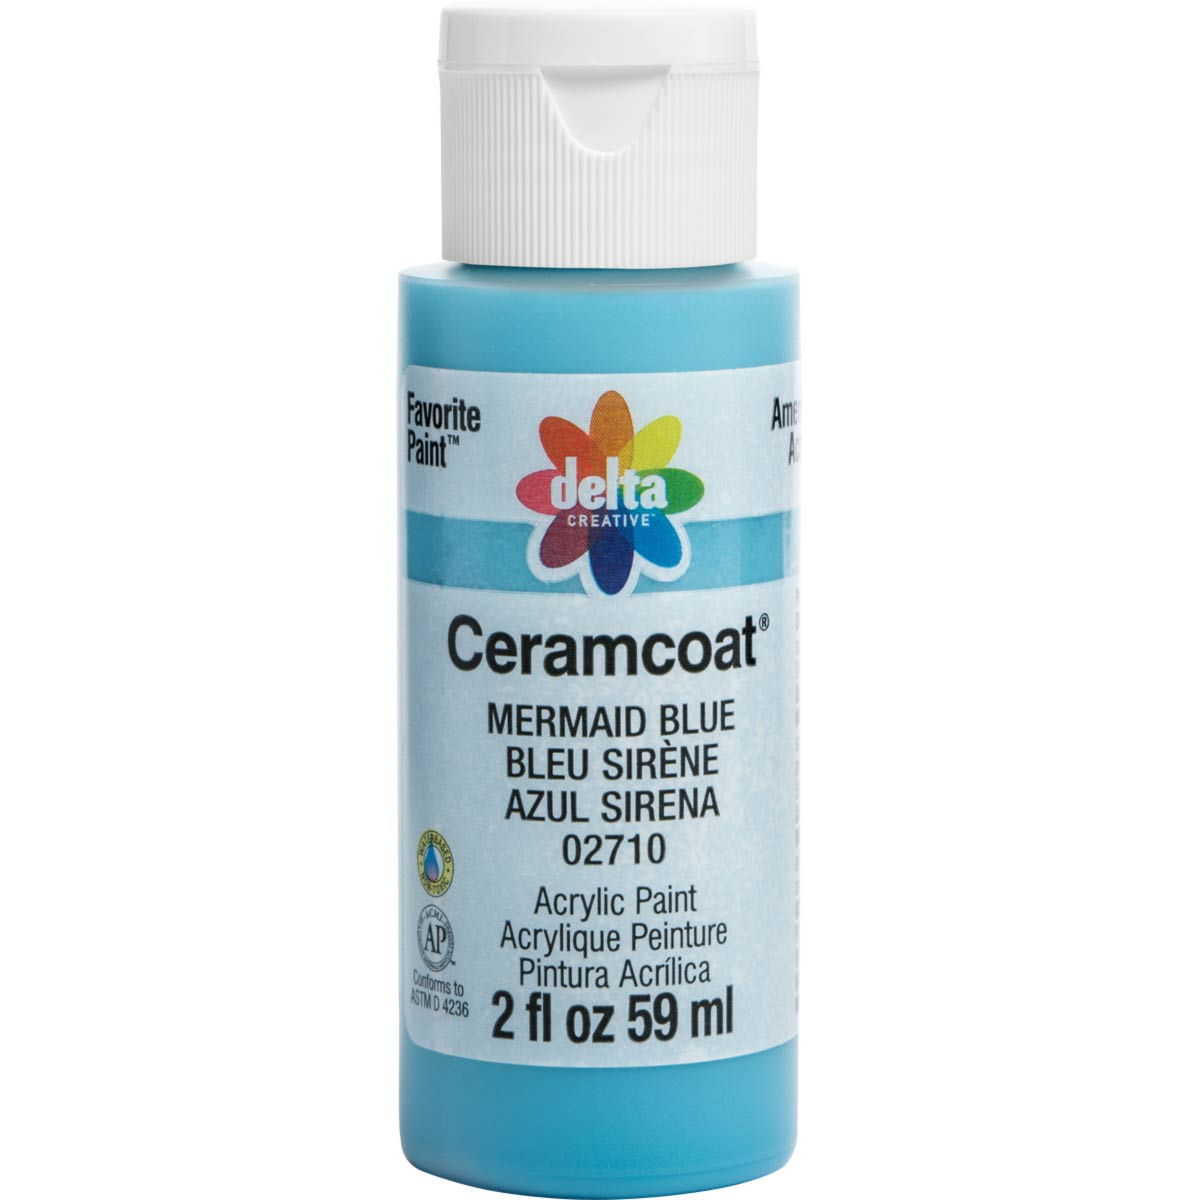 Delta Ceramcoat ® Acrylic Paint - Mermaid Blue, 2 oz.